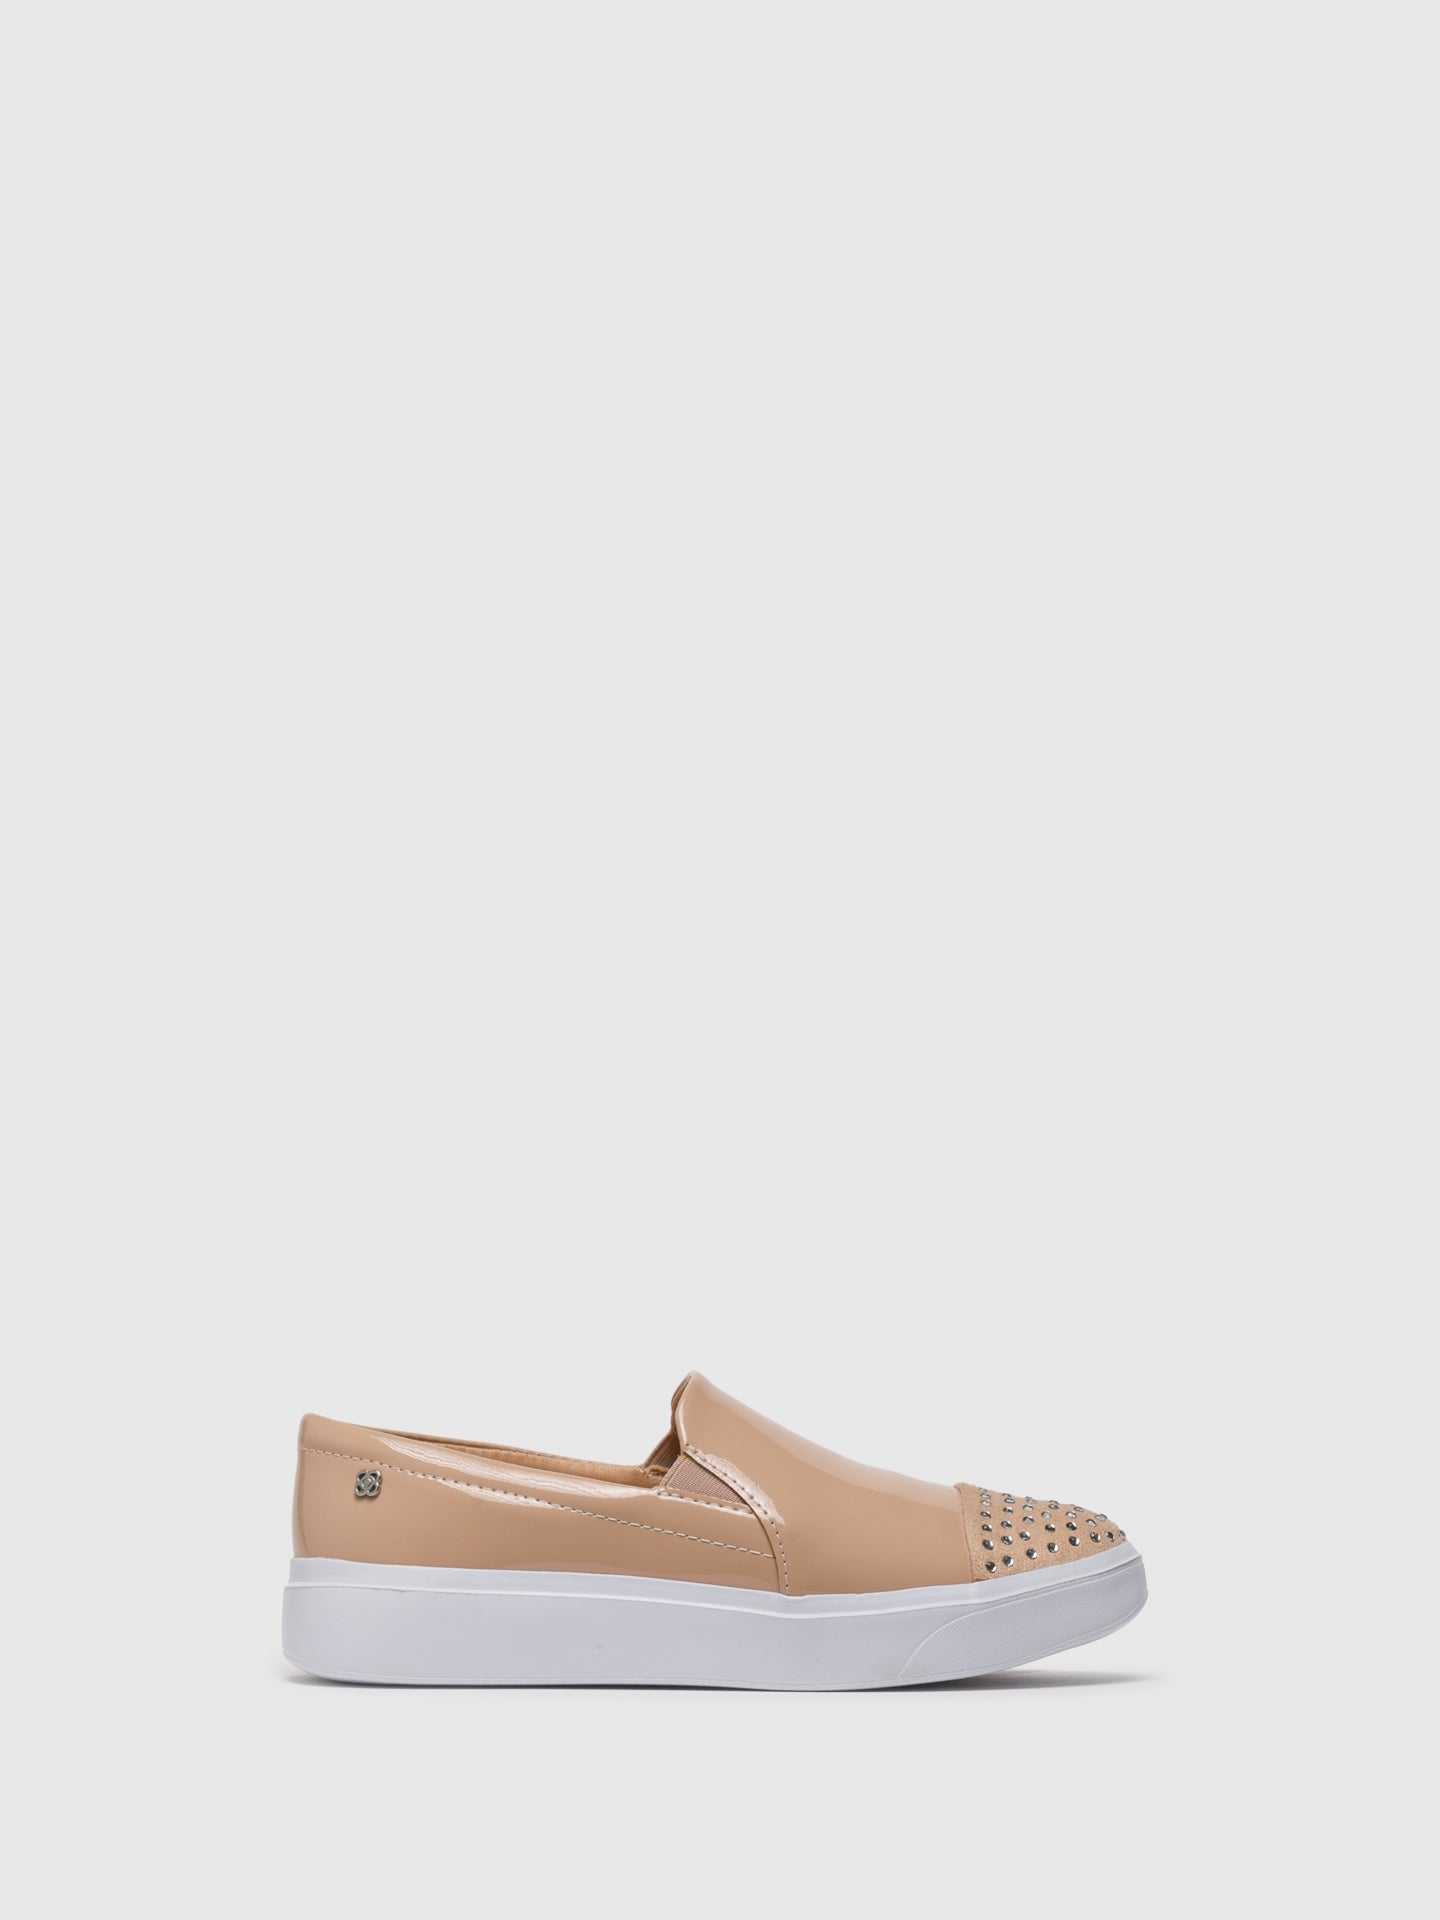 PETITE JOLIE by PARODI BlanchedAlmond	 Slip-on Trainers